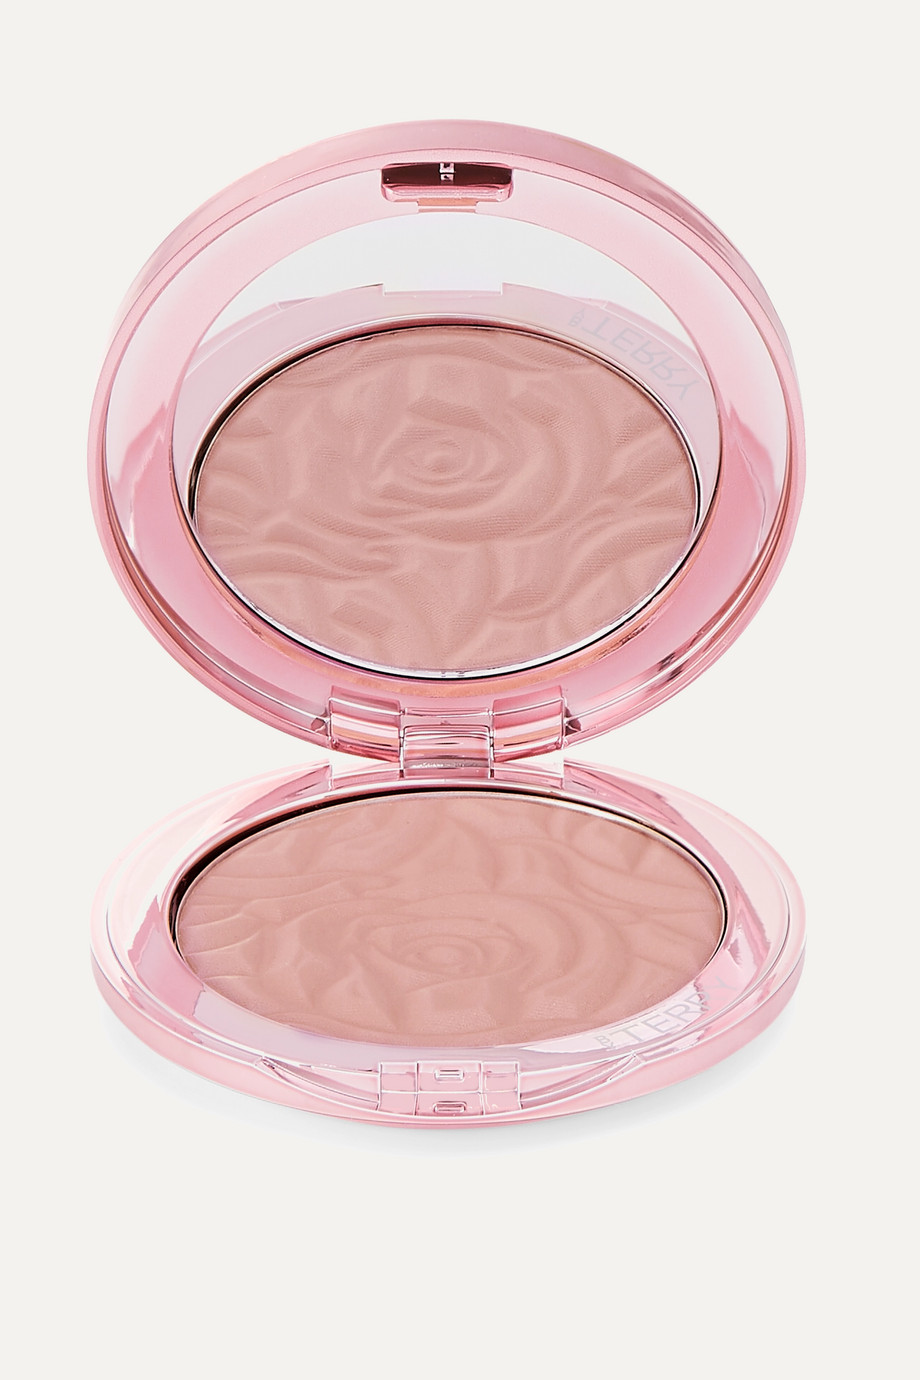 BY TERRY Brightening CC Powder - Sunny Flash No.4